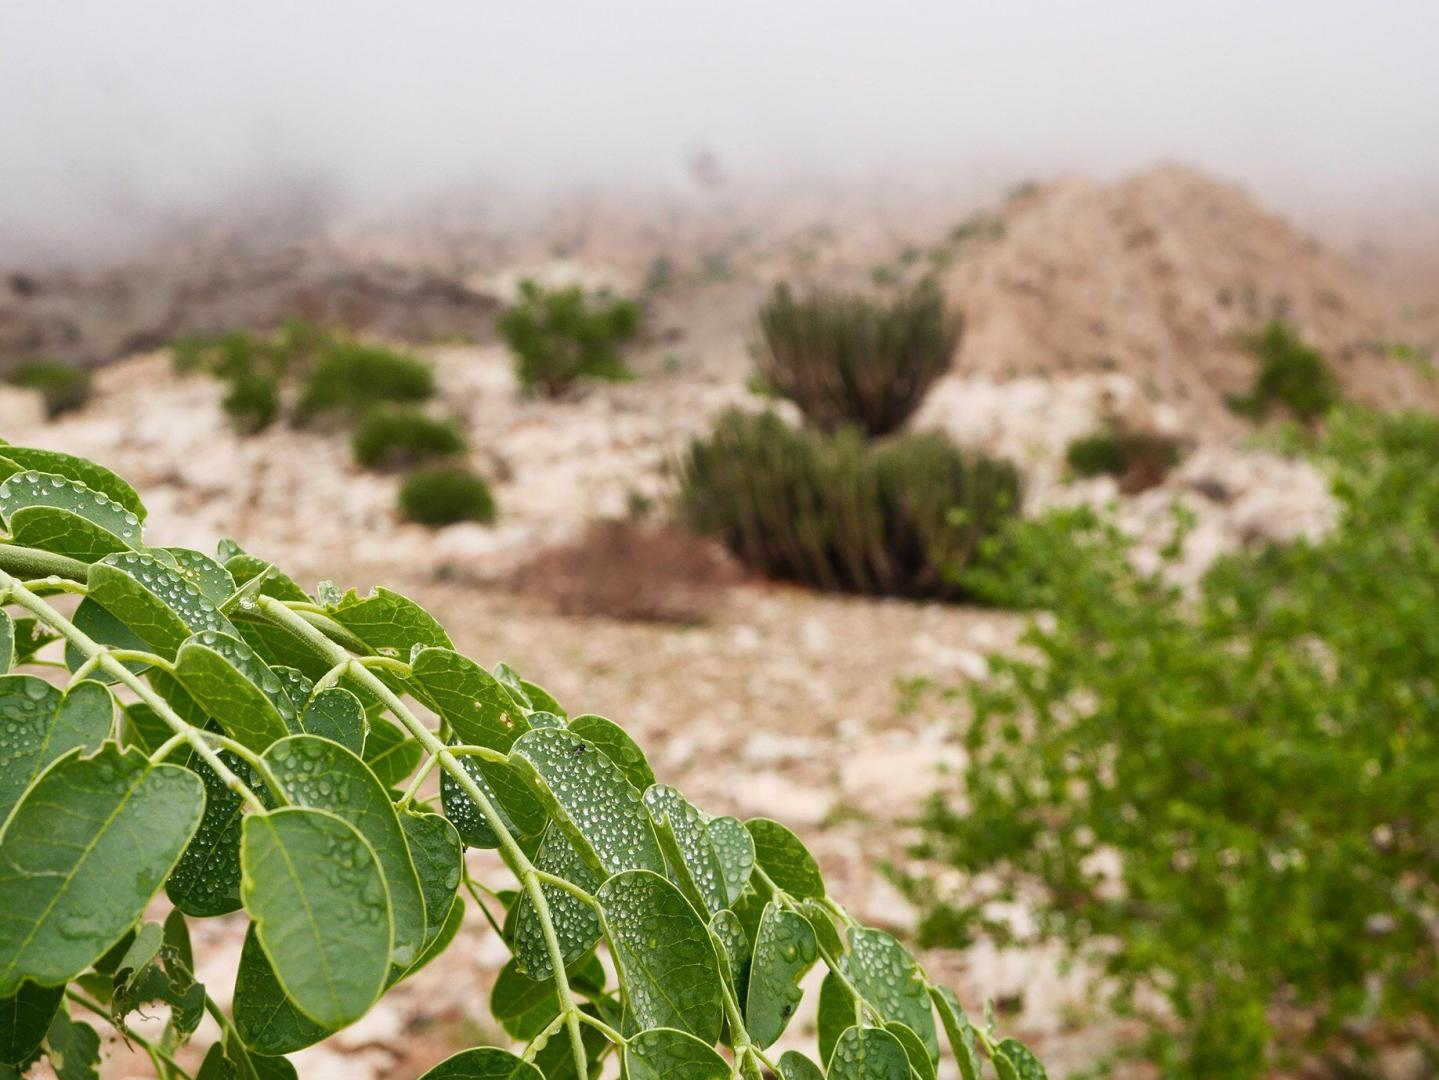 Plants collect moisture from low clouds to survive during drought.